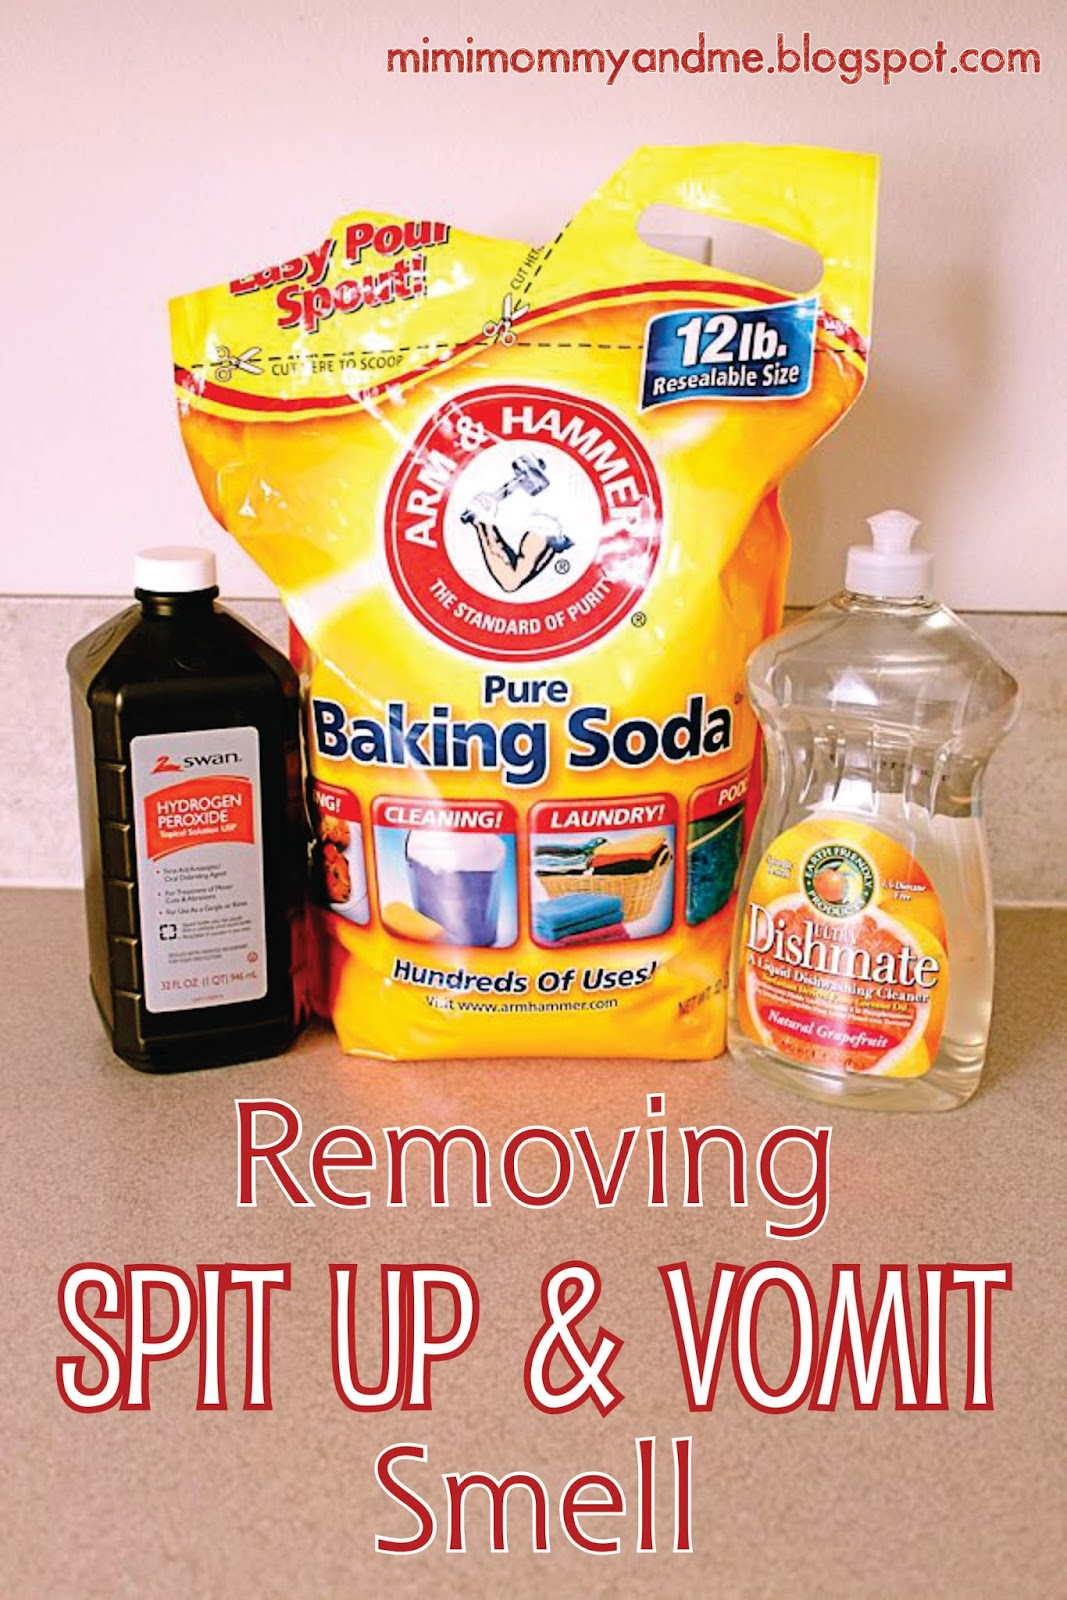 http://mimimommyandme.blogspot.com/2014/05/removing-spit-up-and-vomit-smell.html